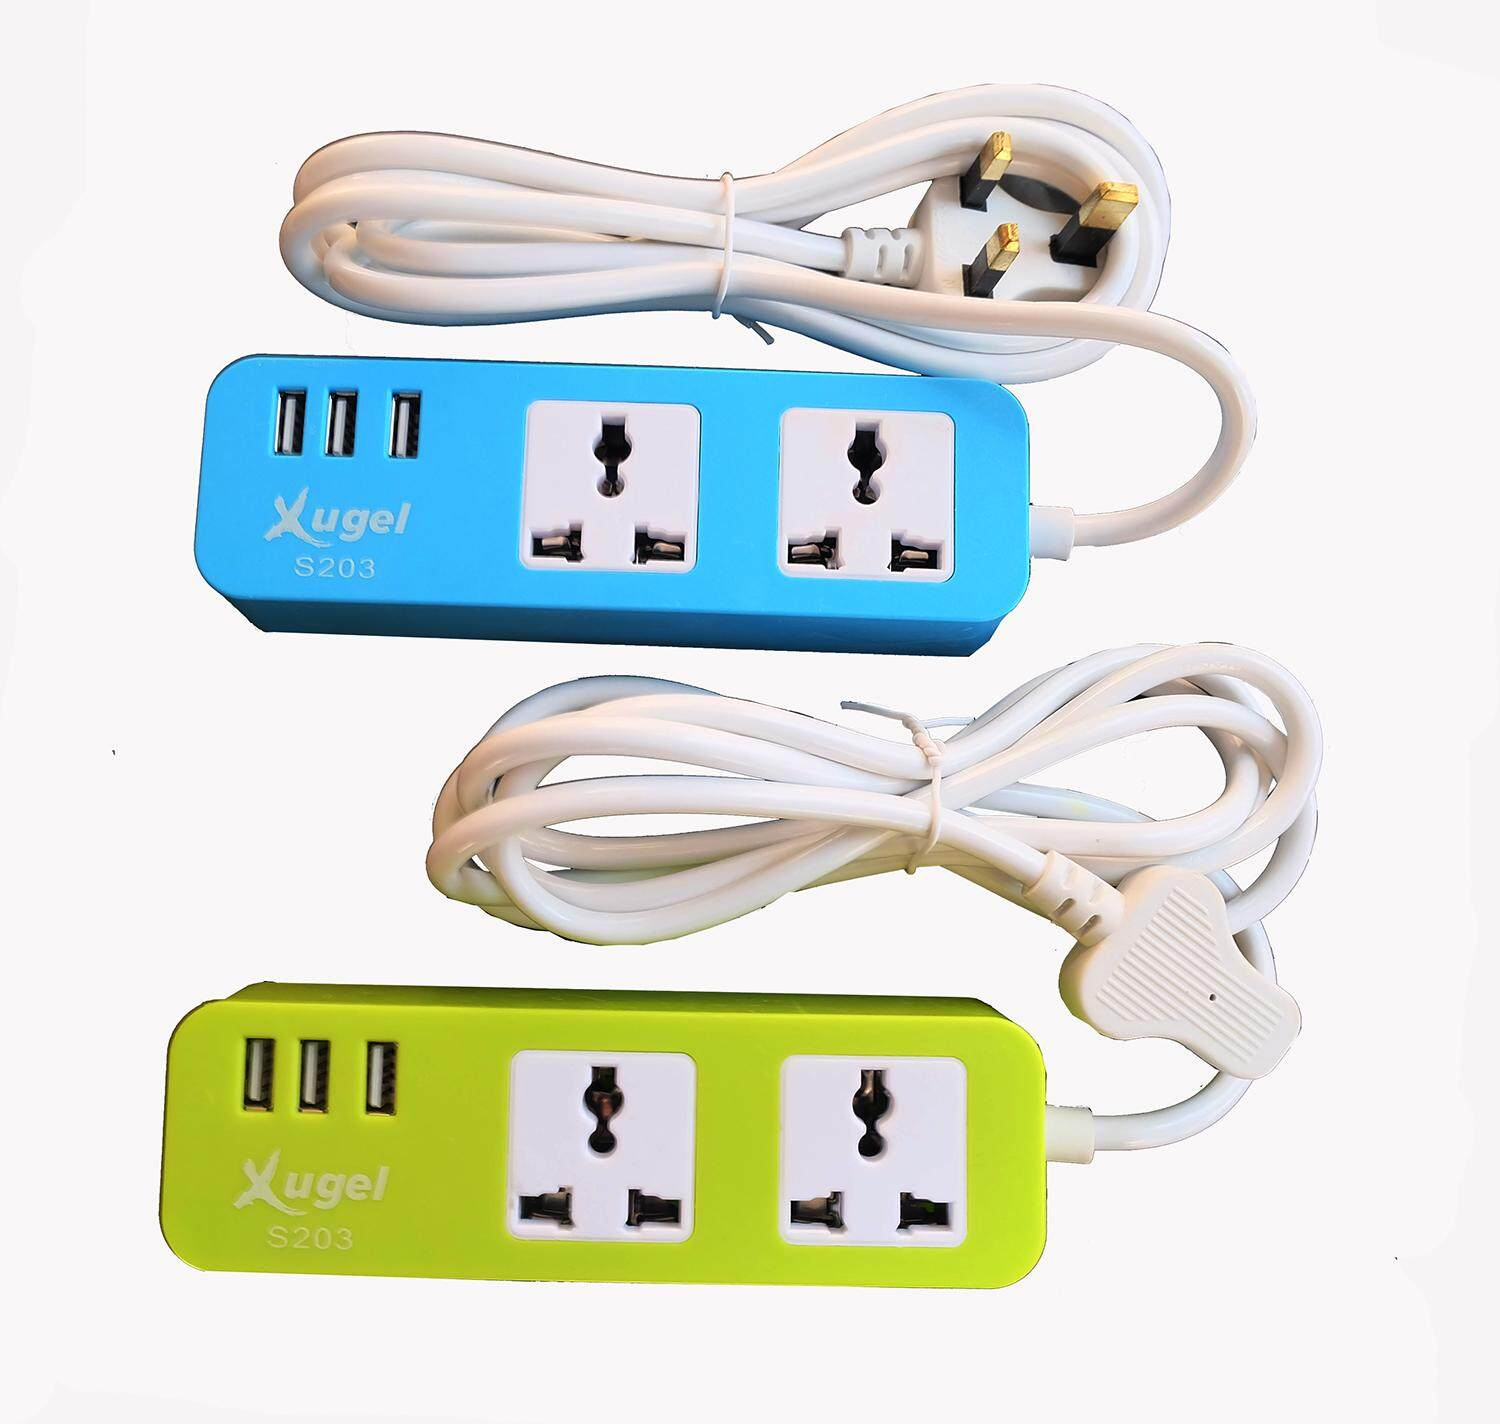 Home Cables Leads Adapters Buy At Wiring An Mk Socket Xugel Usb Power Box 2 Meter Cable Extension 3 Charger Port And